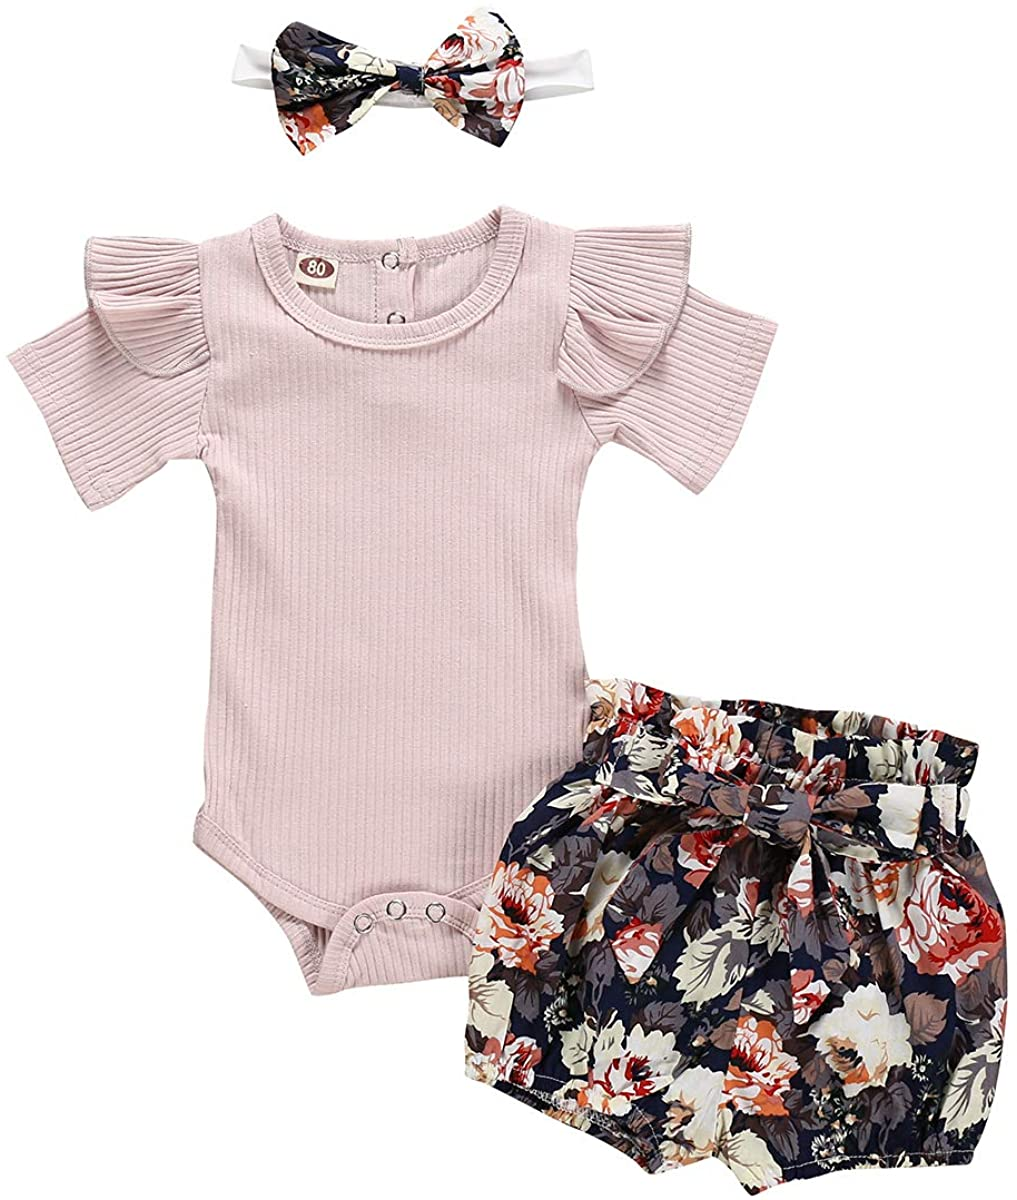 Newborn Baby Girl Summer Outfits Solid Color Flying Sleeve Romper +Floral Short Pants+Headband Clothes Set